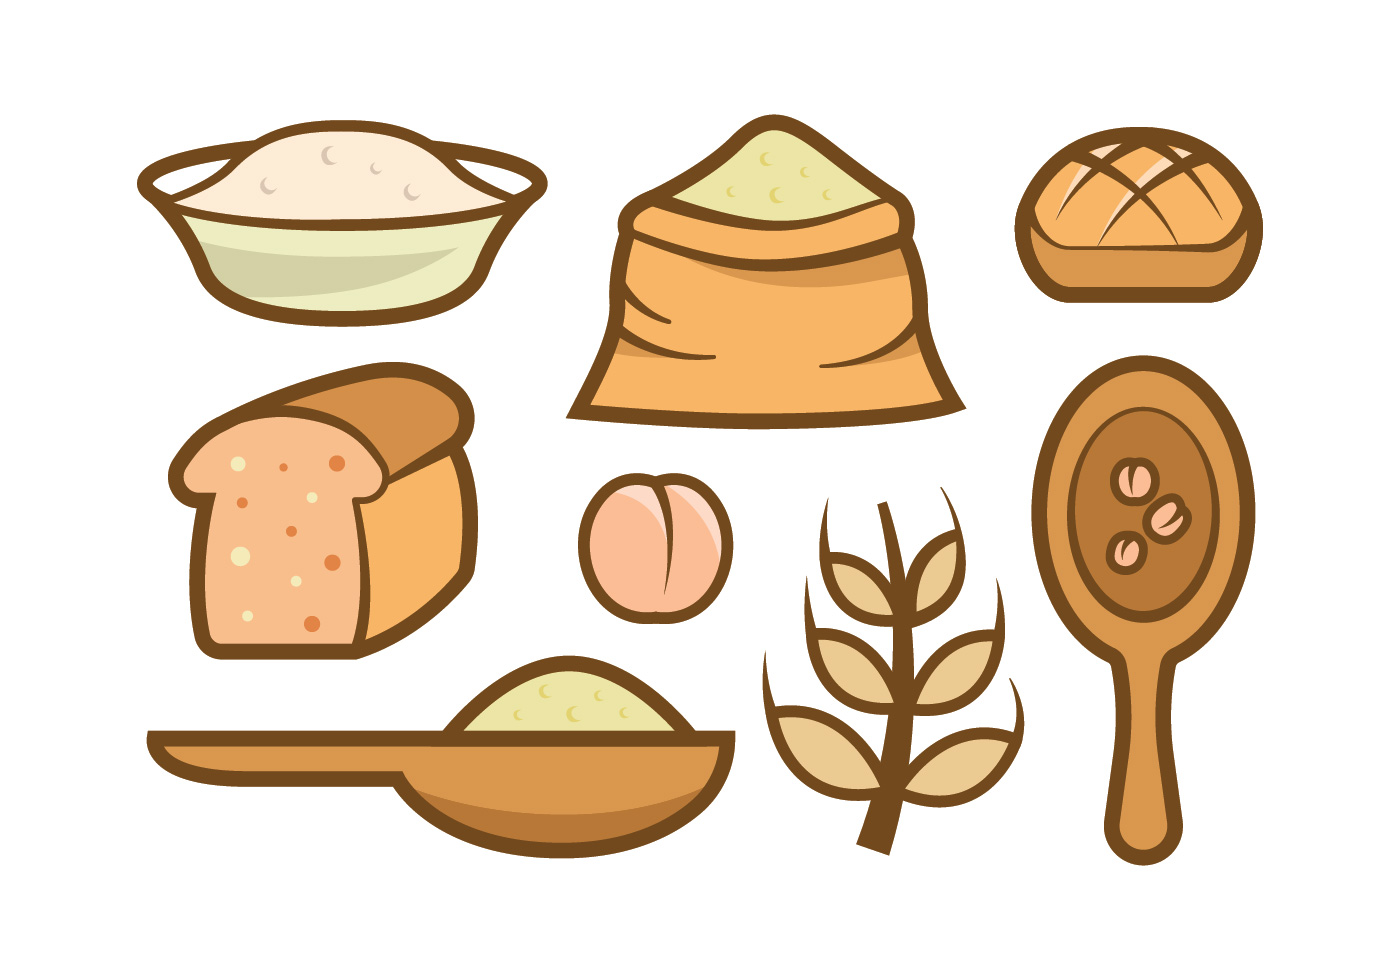 Oats Meal Vector Icons Download Free Vector Art Stock